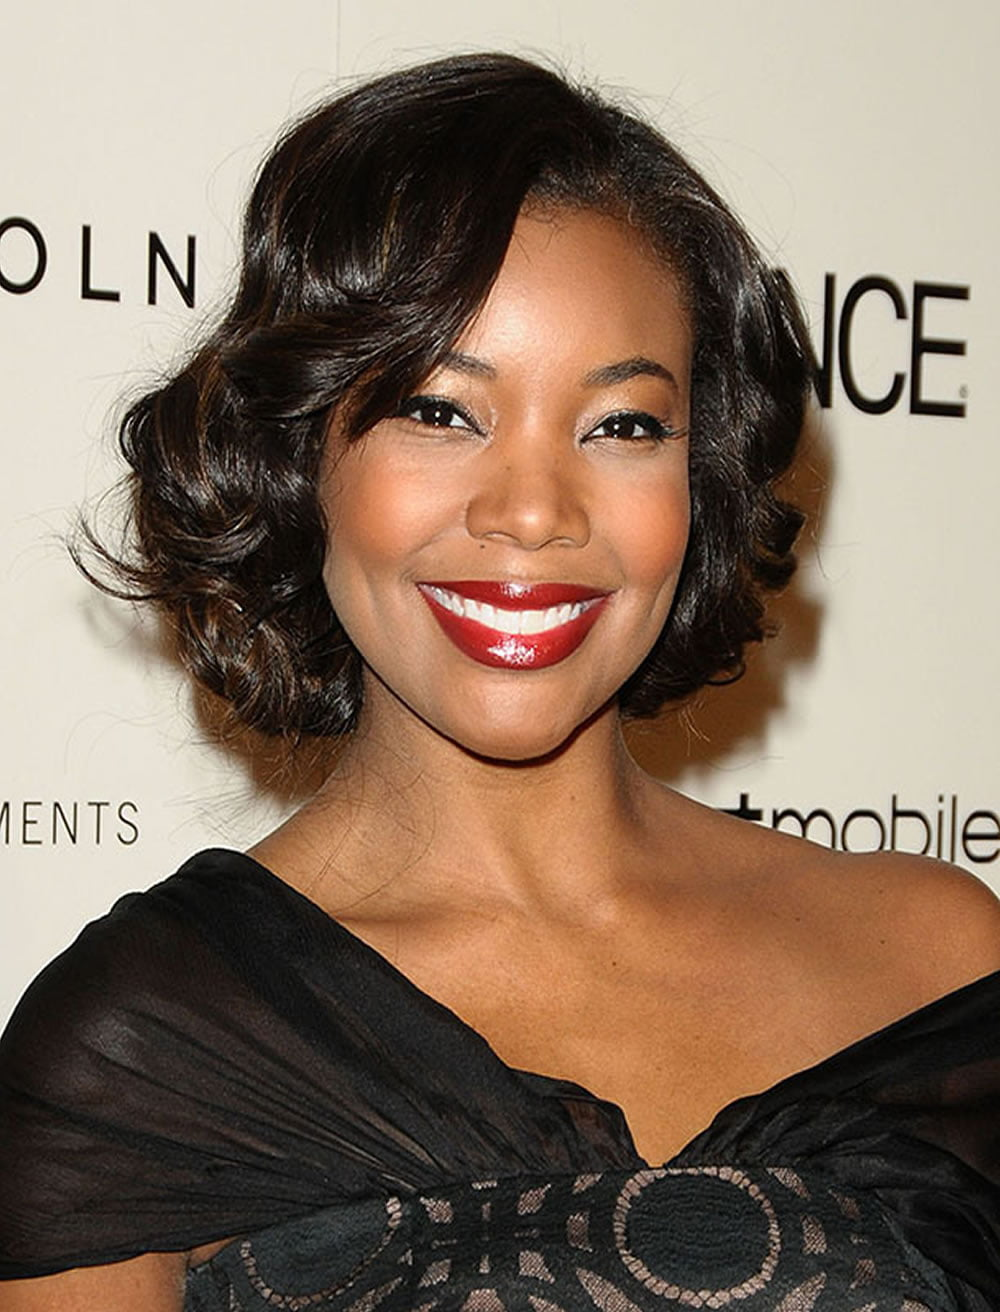 Layered Bob Hair Ideas for Black Women With Round Face - HAIRSTYLES